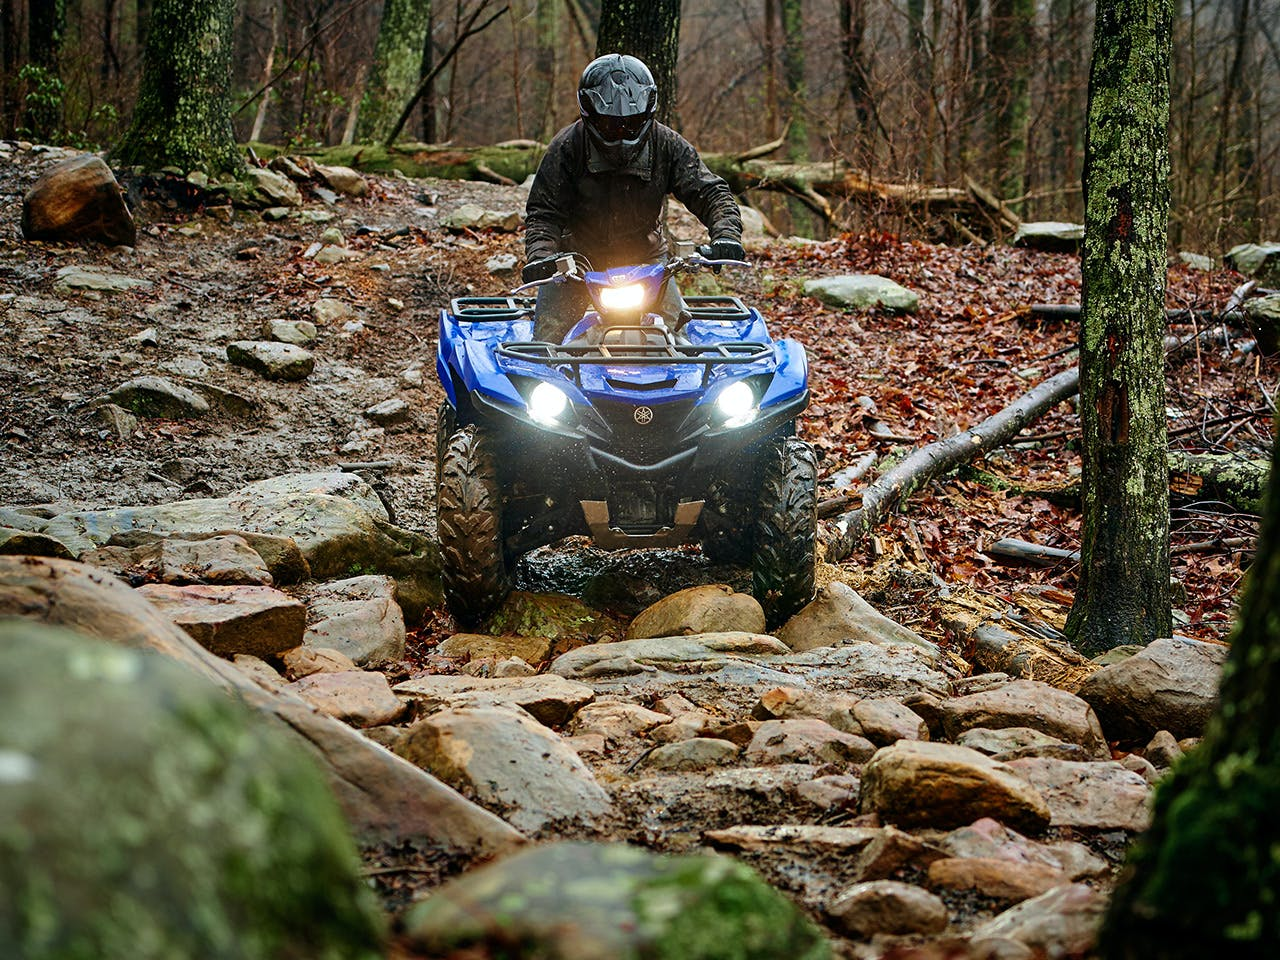 Yamaha Grizzly 700 in Steel Blue colour riding over a rocky path